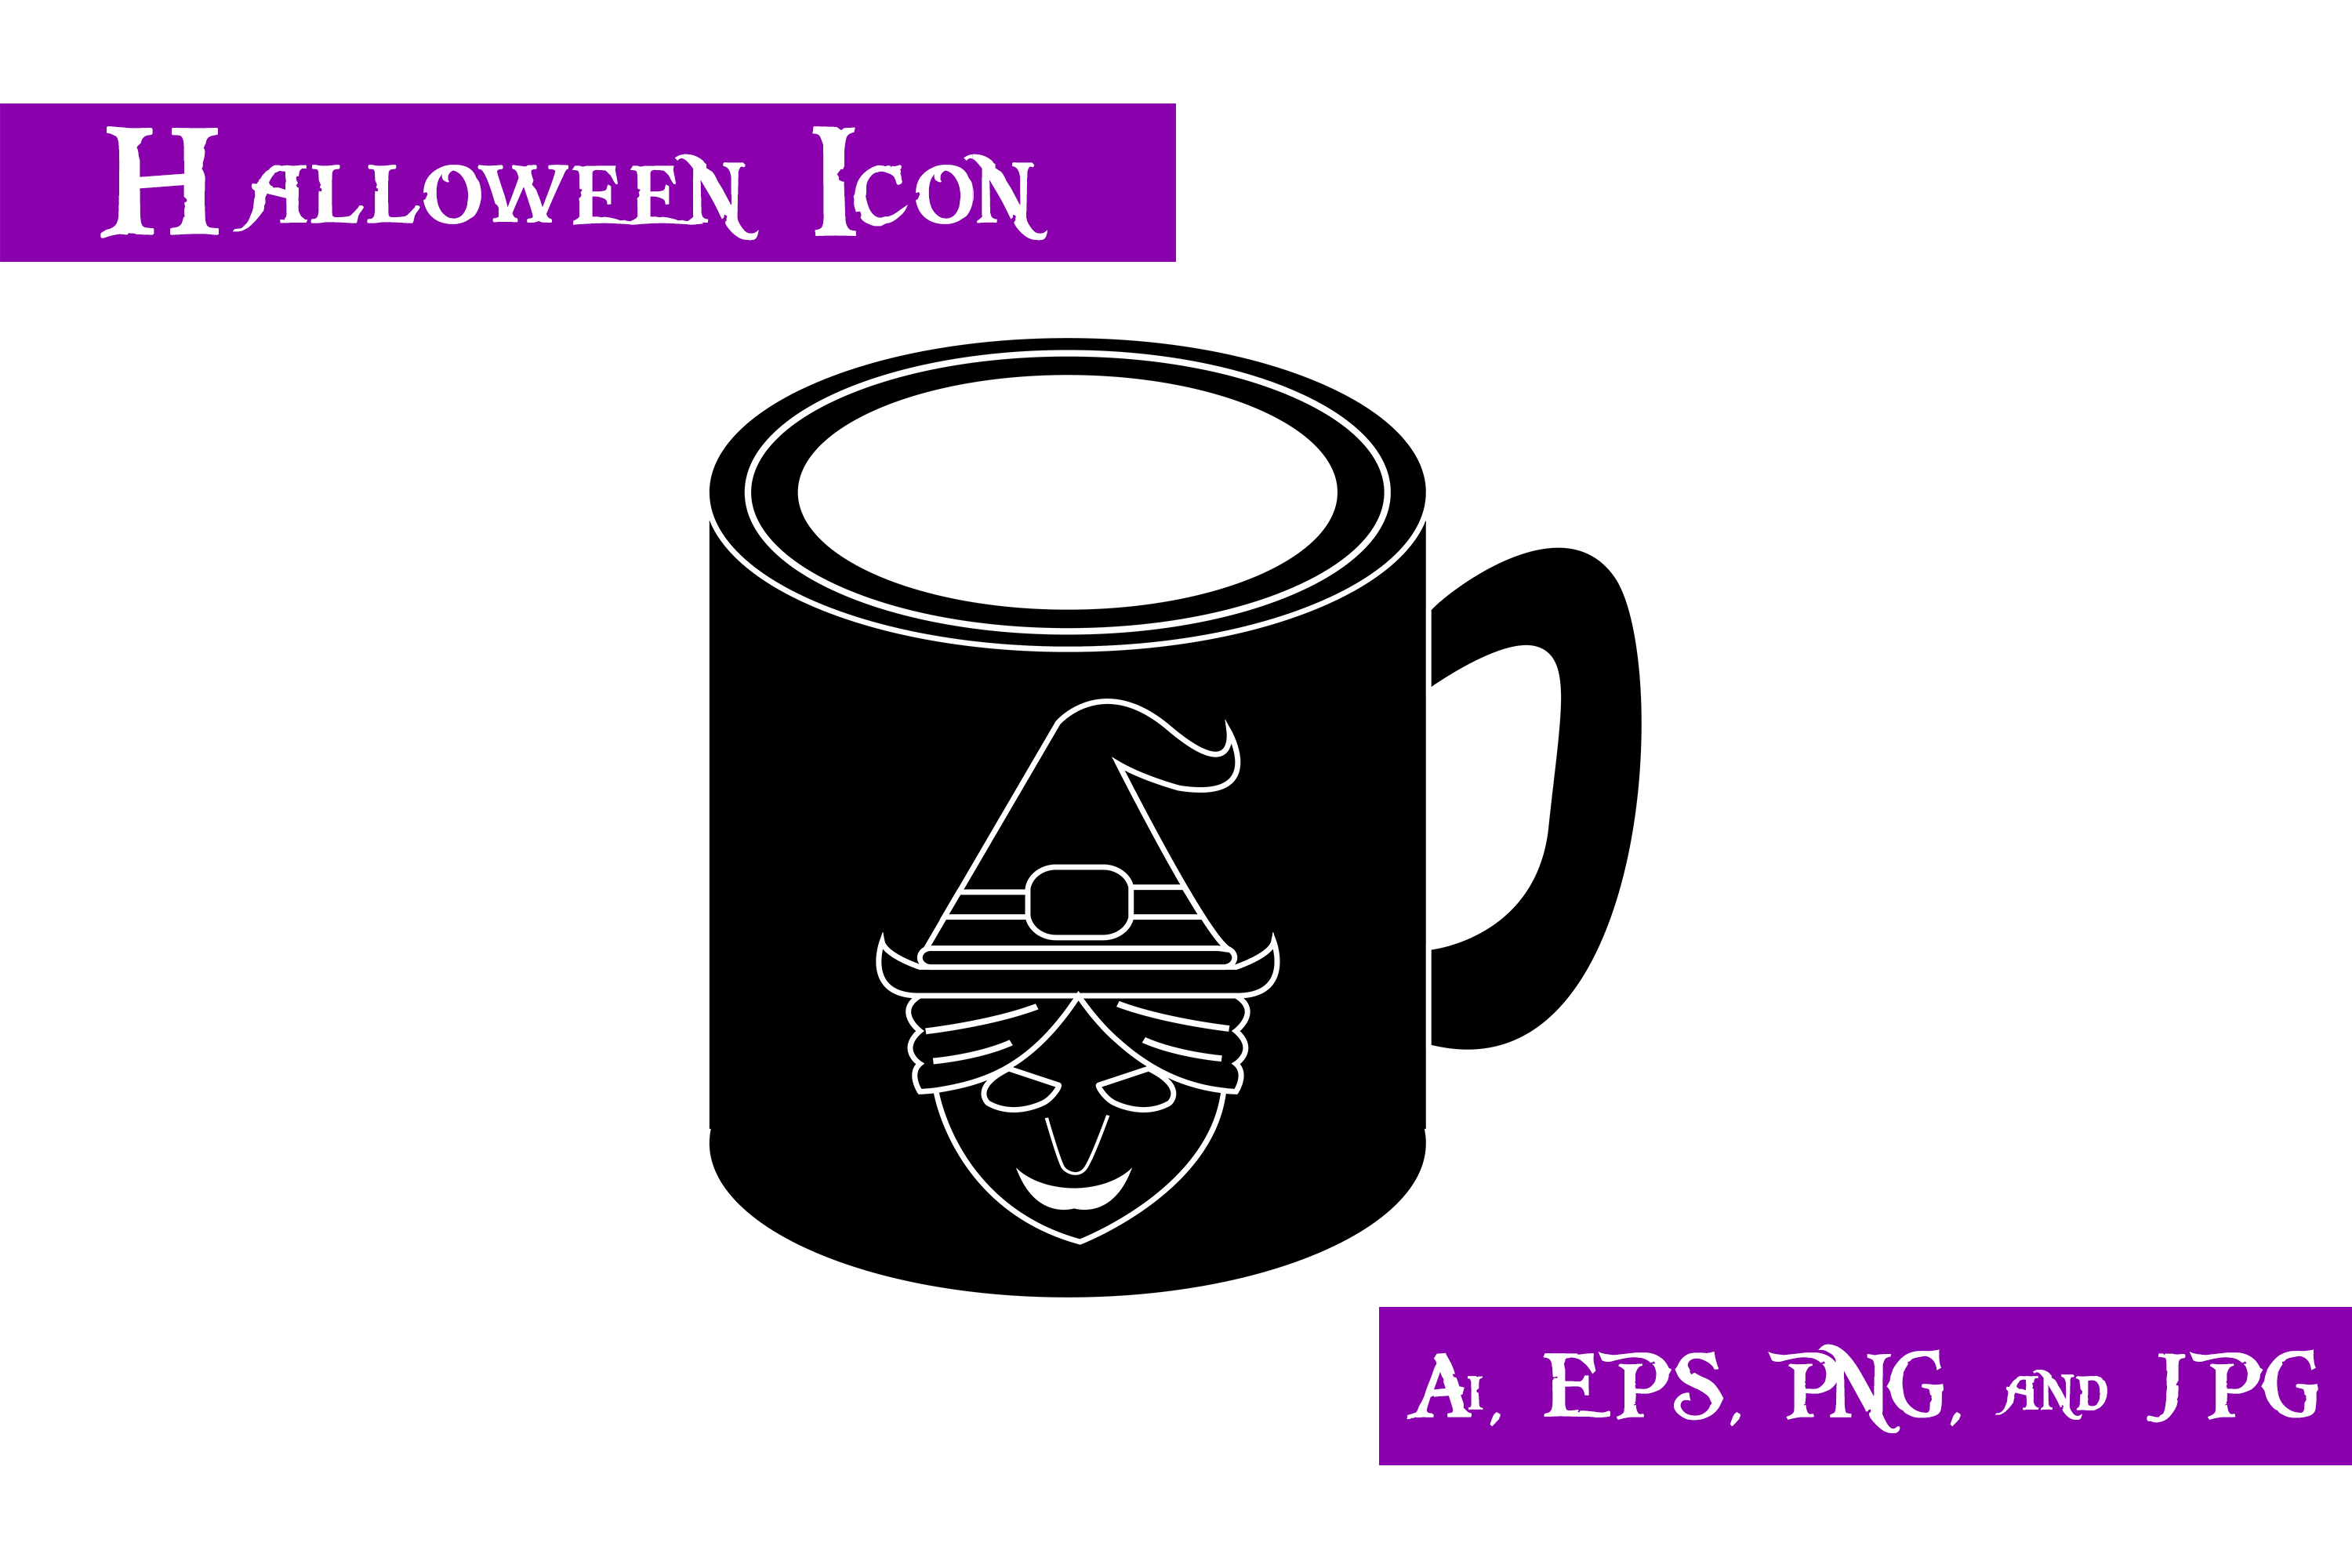 Download Free Witch Glass Halloween Icon Graphic By Purplespoonpirates for Cricut Explore, Silhouette and other cutting machines.